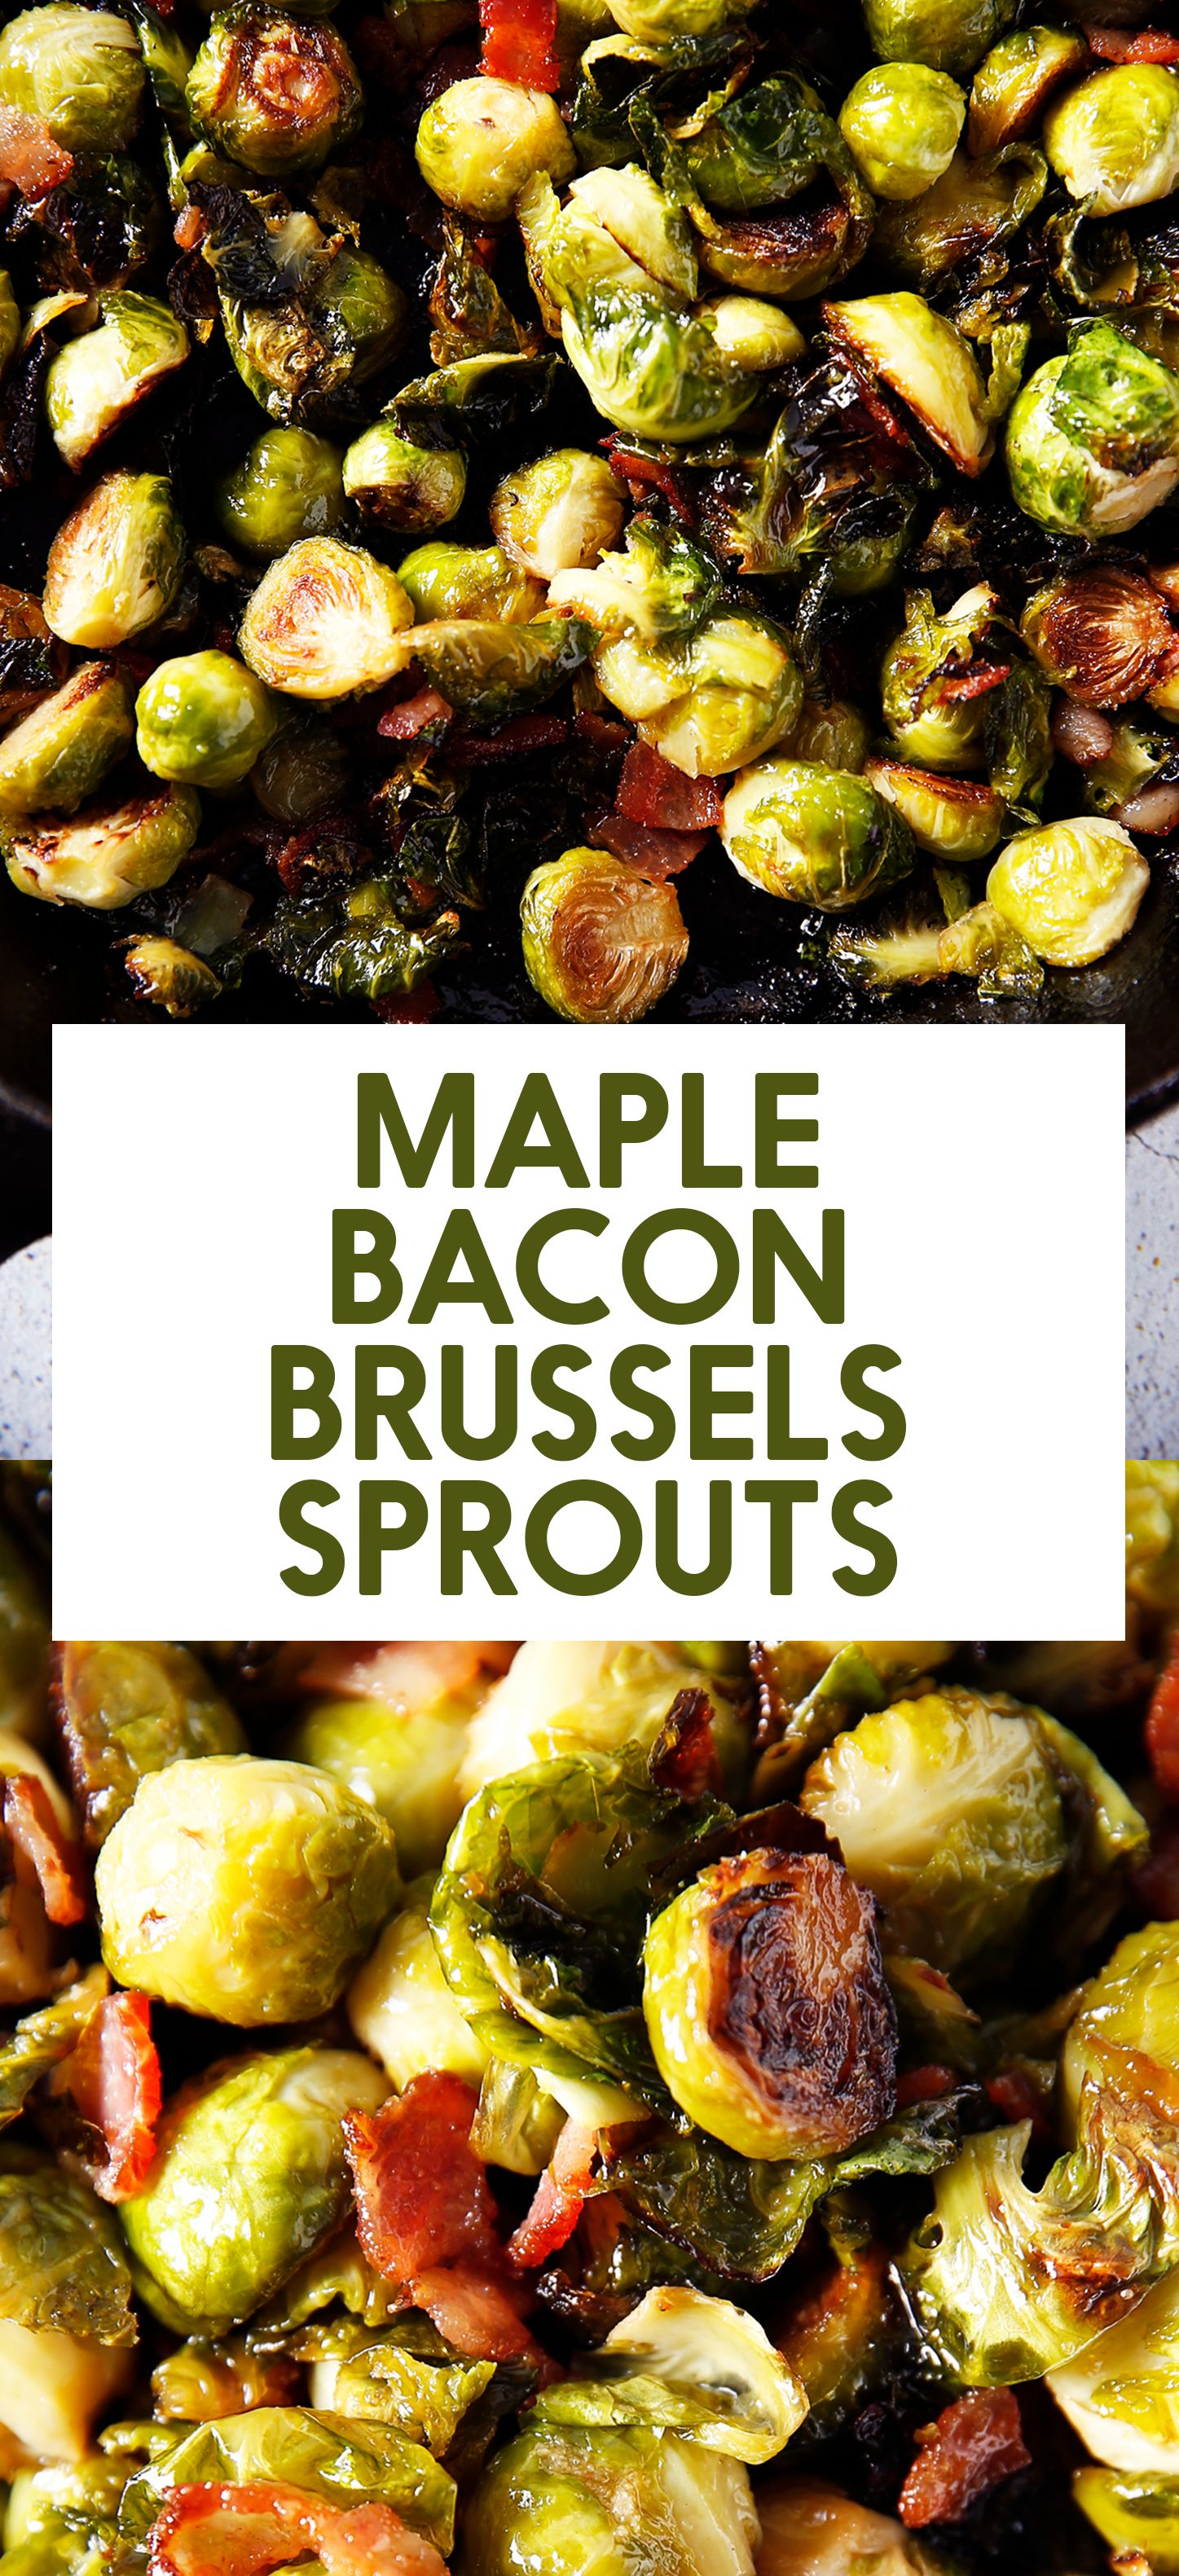 Maple Roasted Brussel Sprouts with Bacon - Lexi's Clean Kitchen